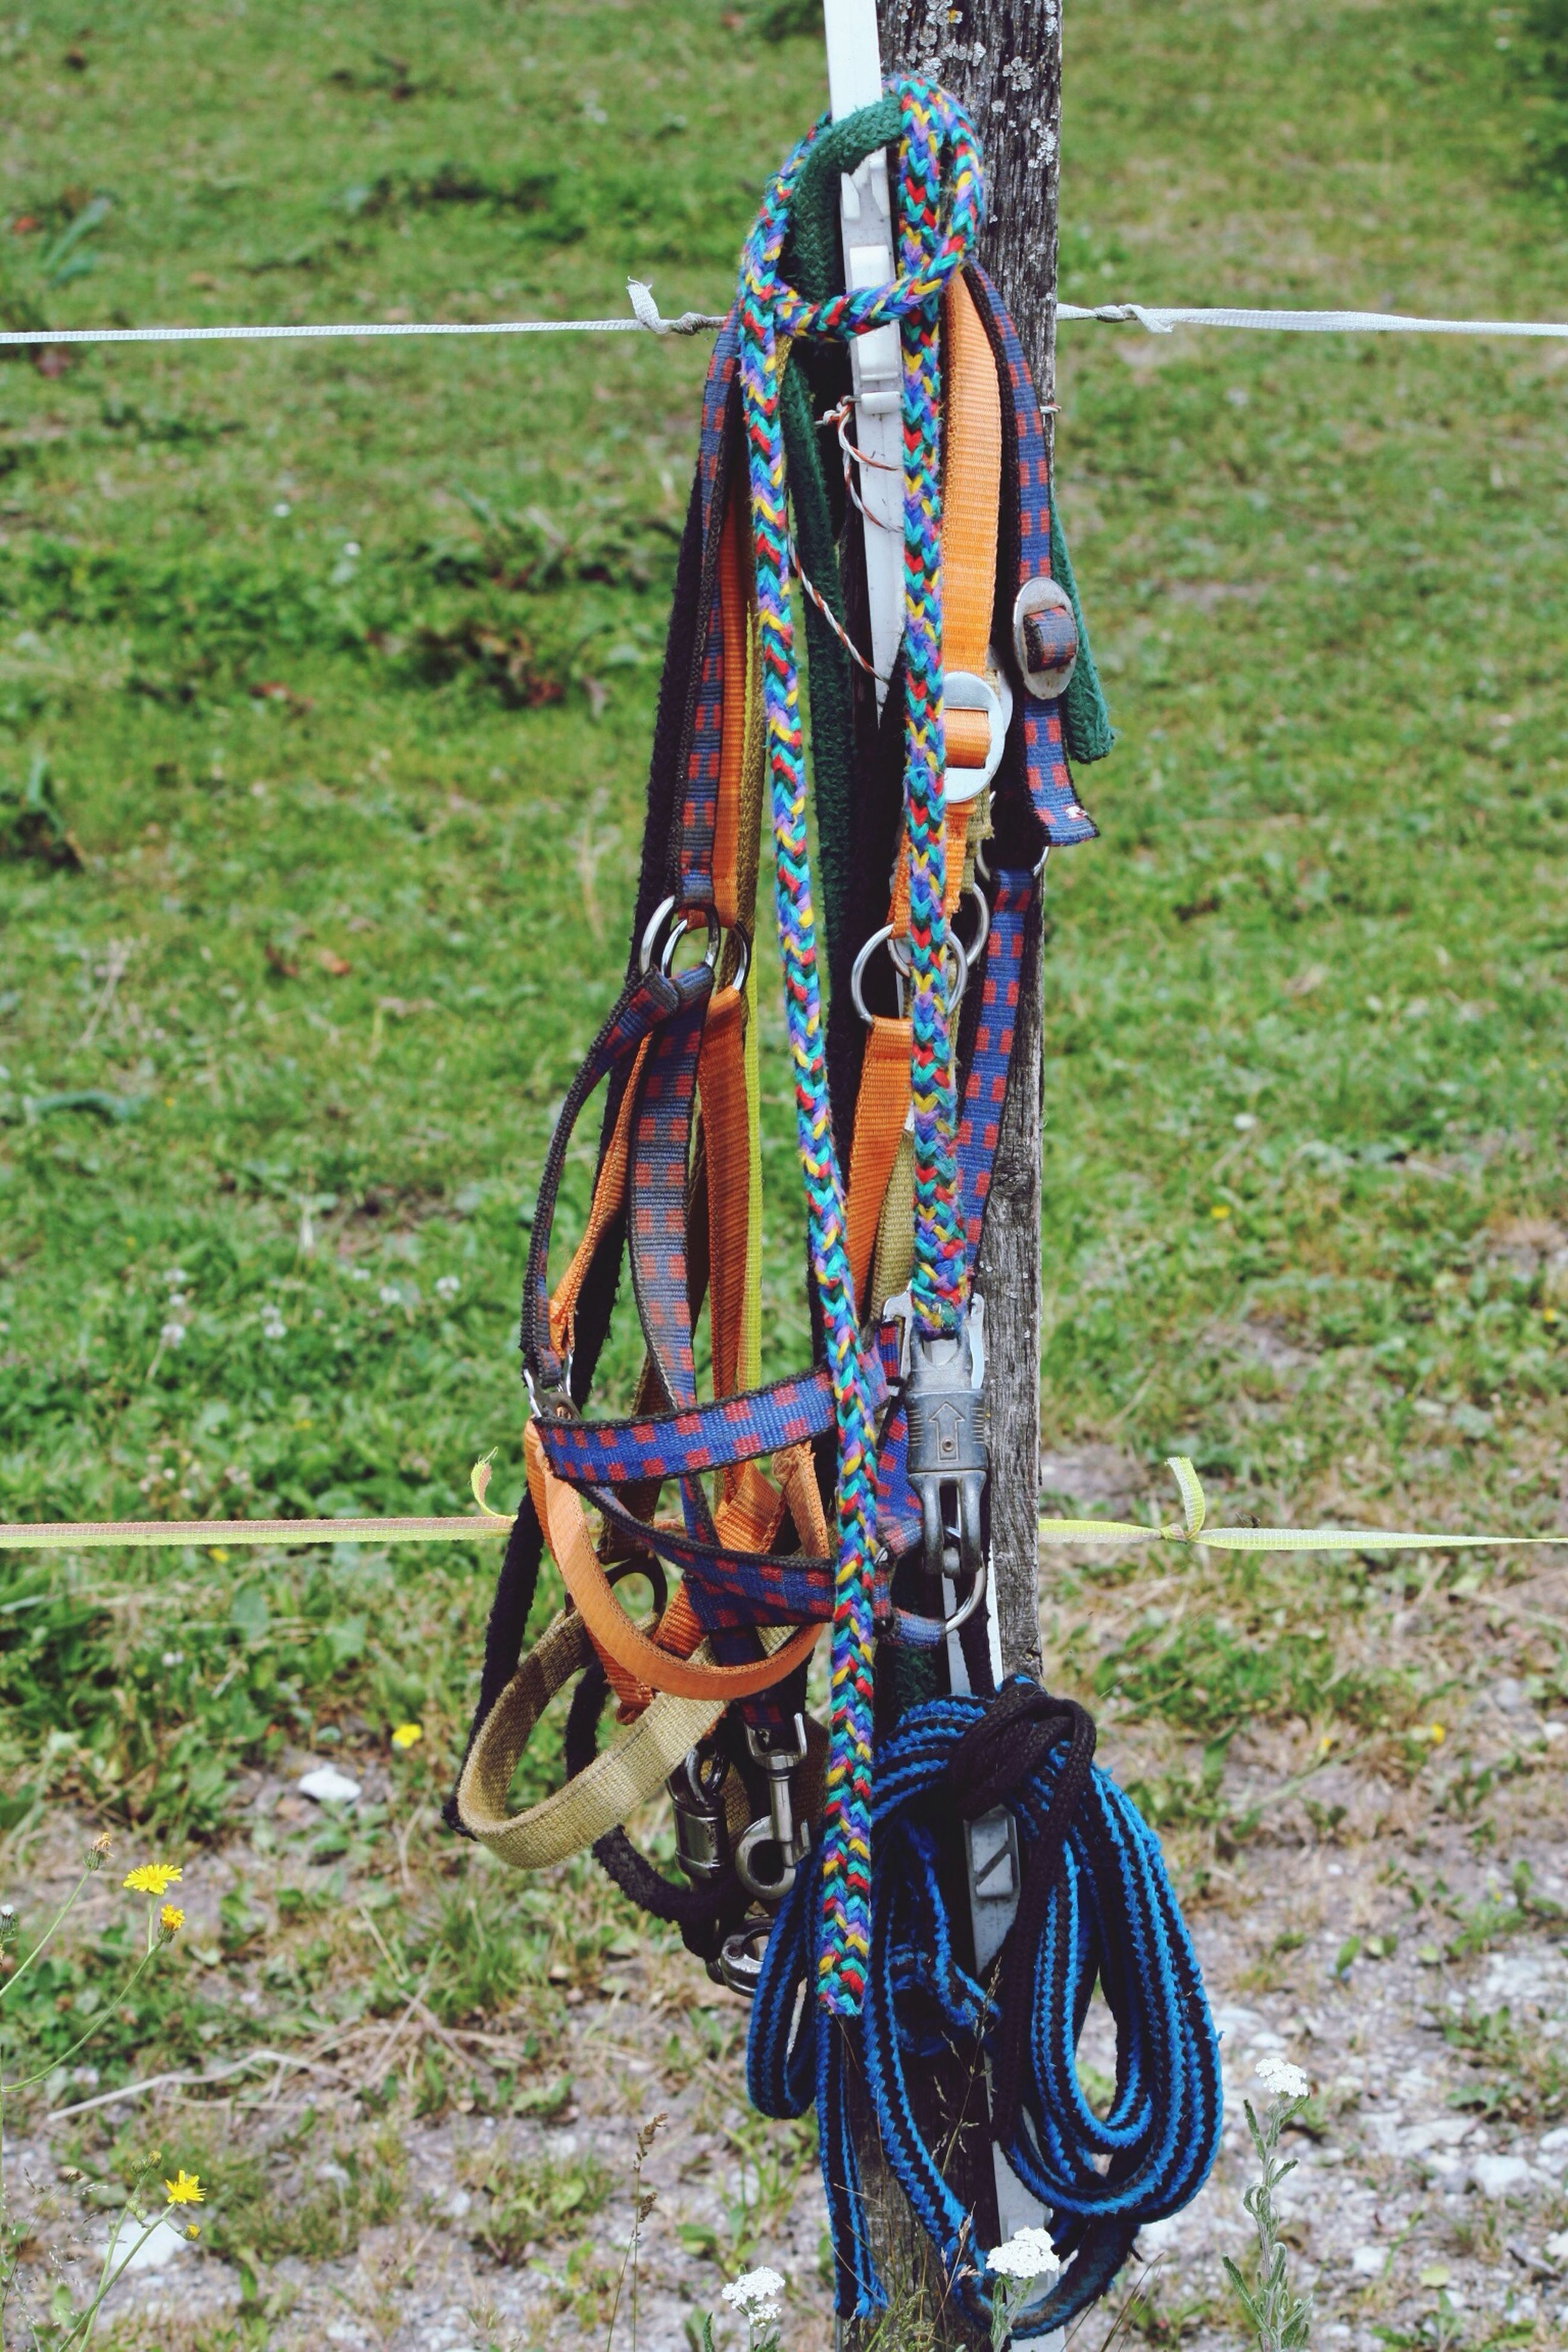 hanging, field, grass, day, sport, outdoors, no people, multi colored, nature, close-up